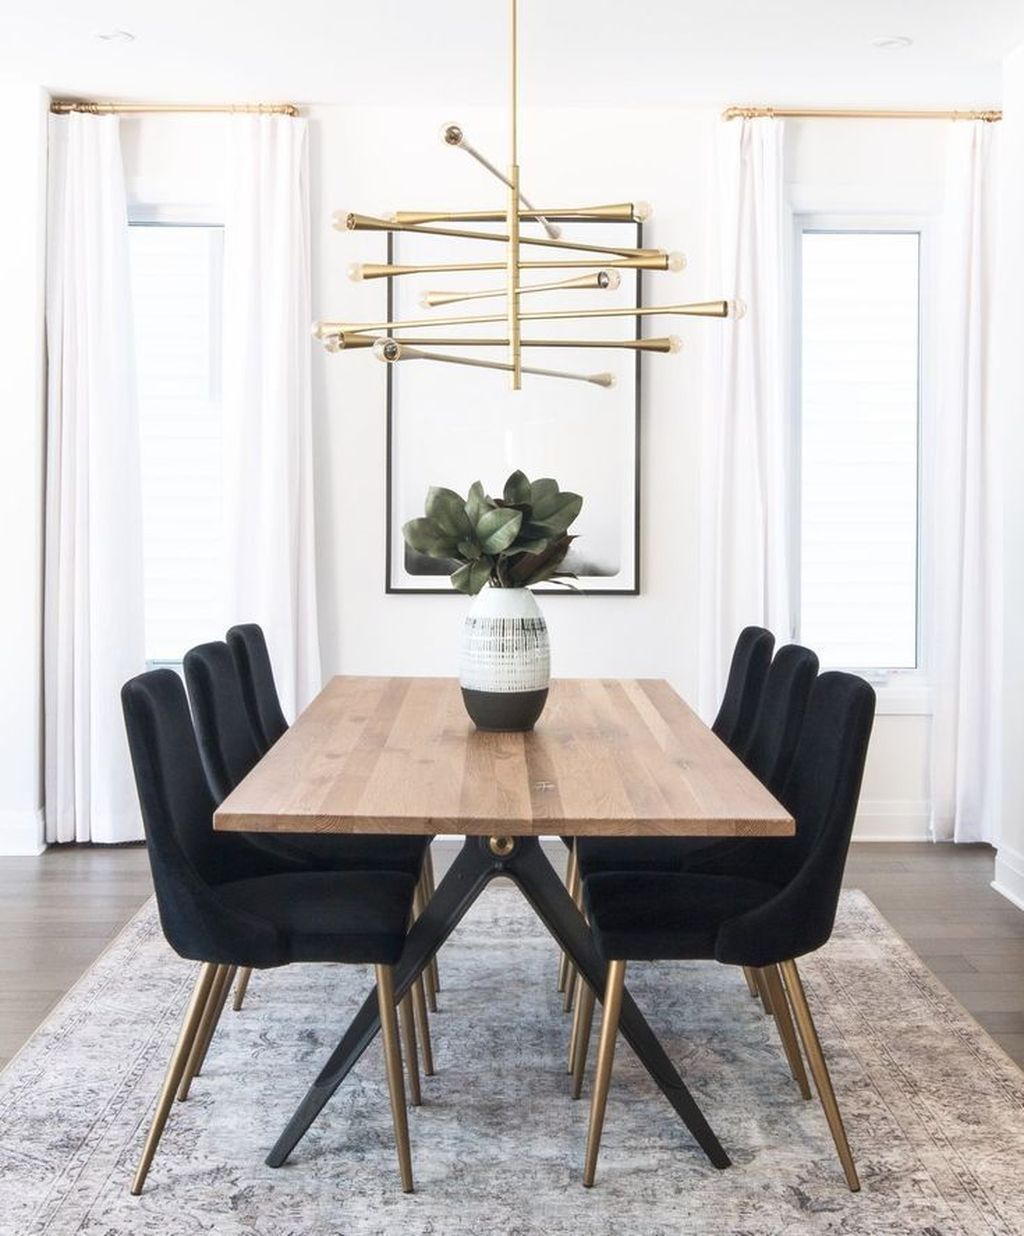 30+ Casual Black And Gold Dining Room Design Ideas For Inspiration